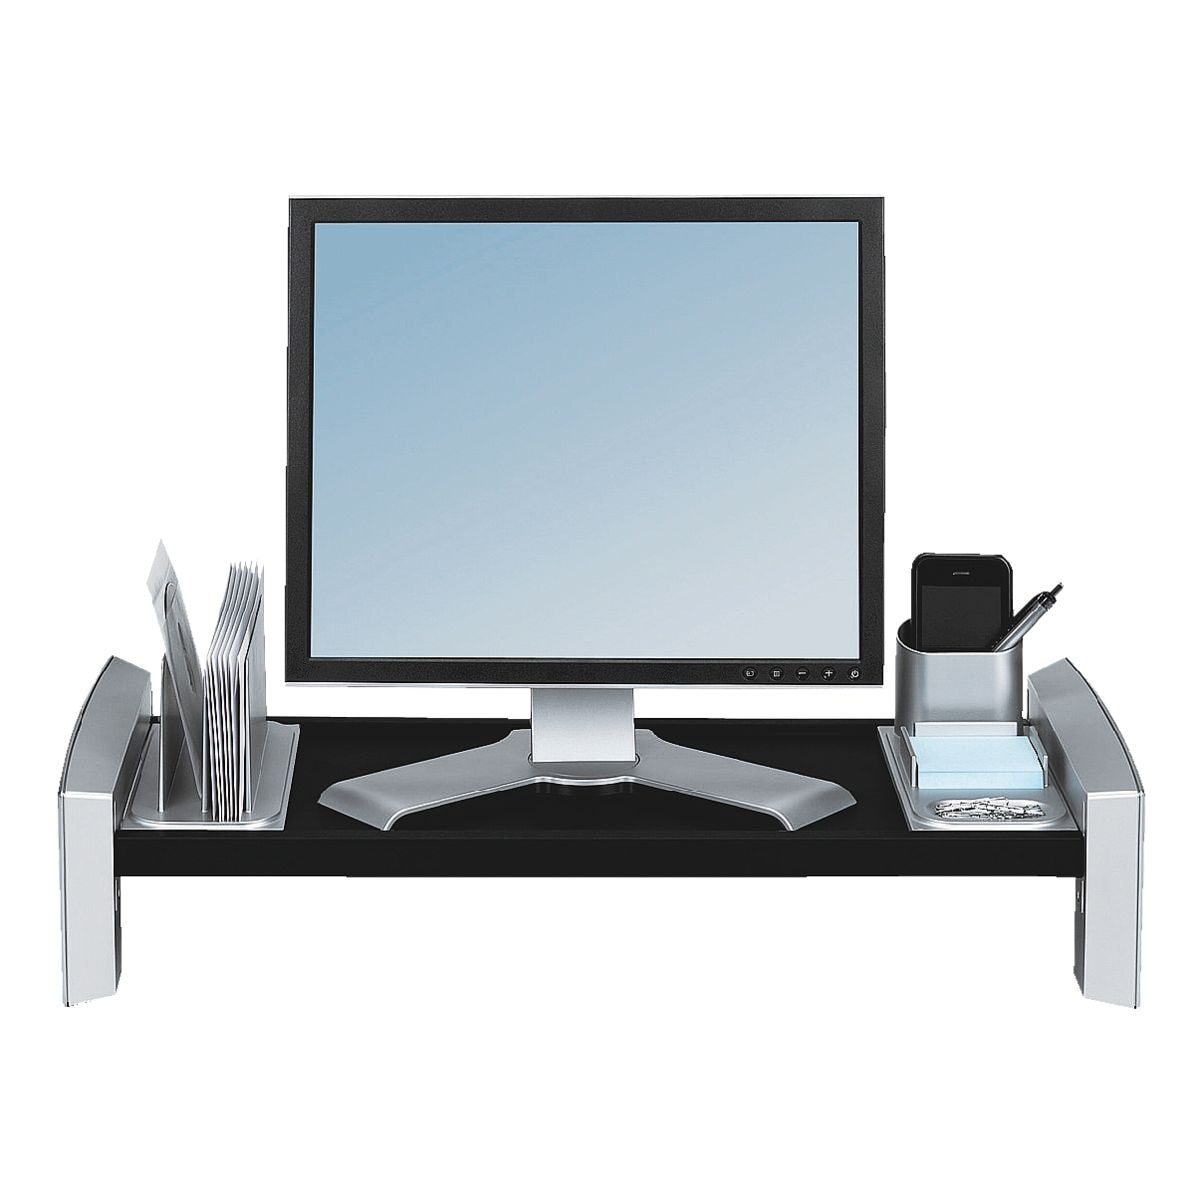 fellowes tft workstation bei otto office g nstig kaufen. Black Bedroom Furniture Sets. Home Design Ideas